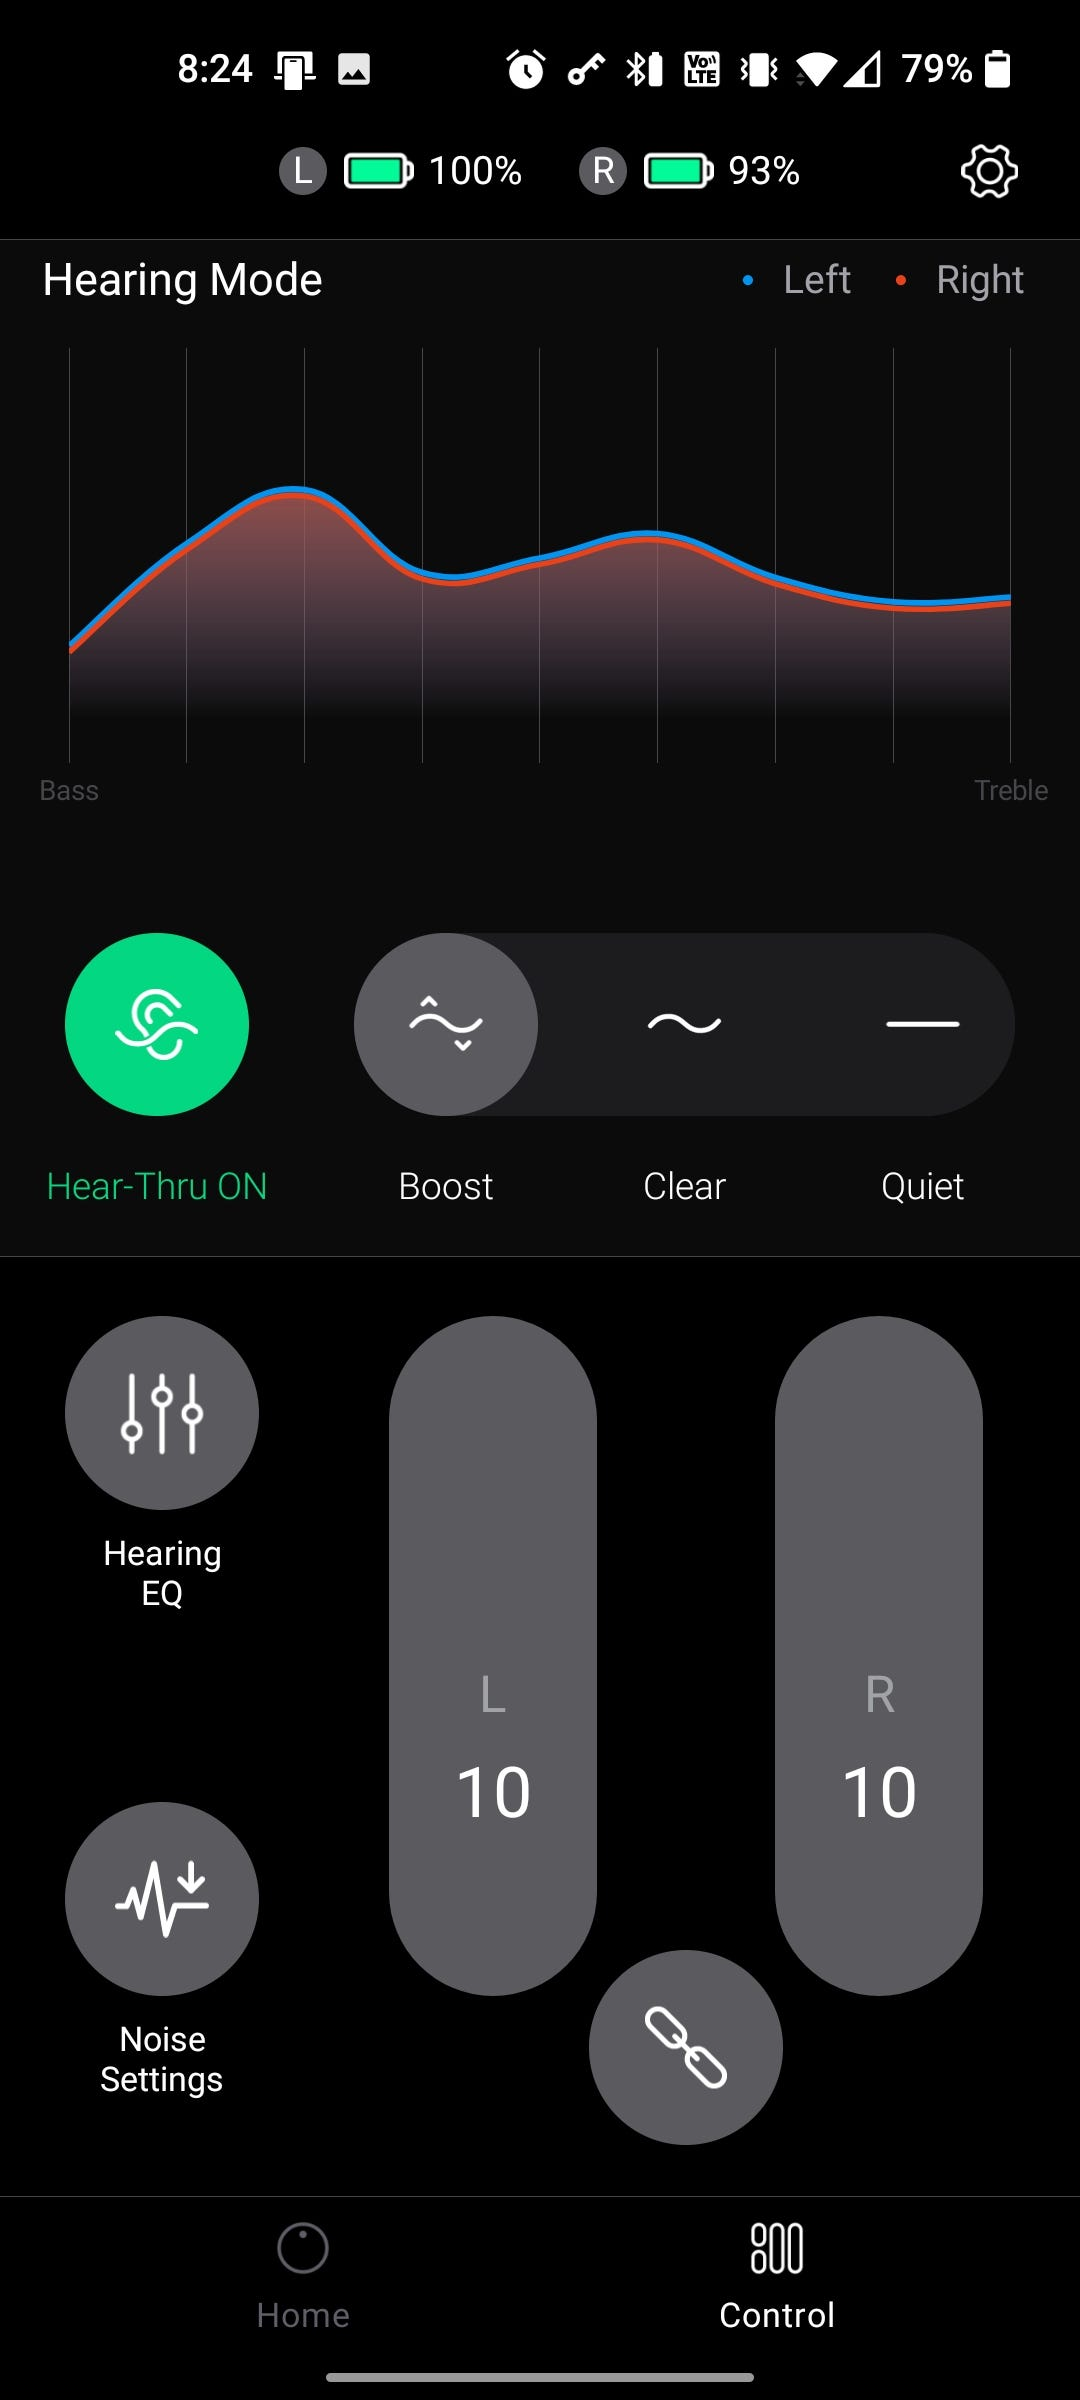 An app with a boost setting on.